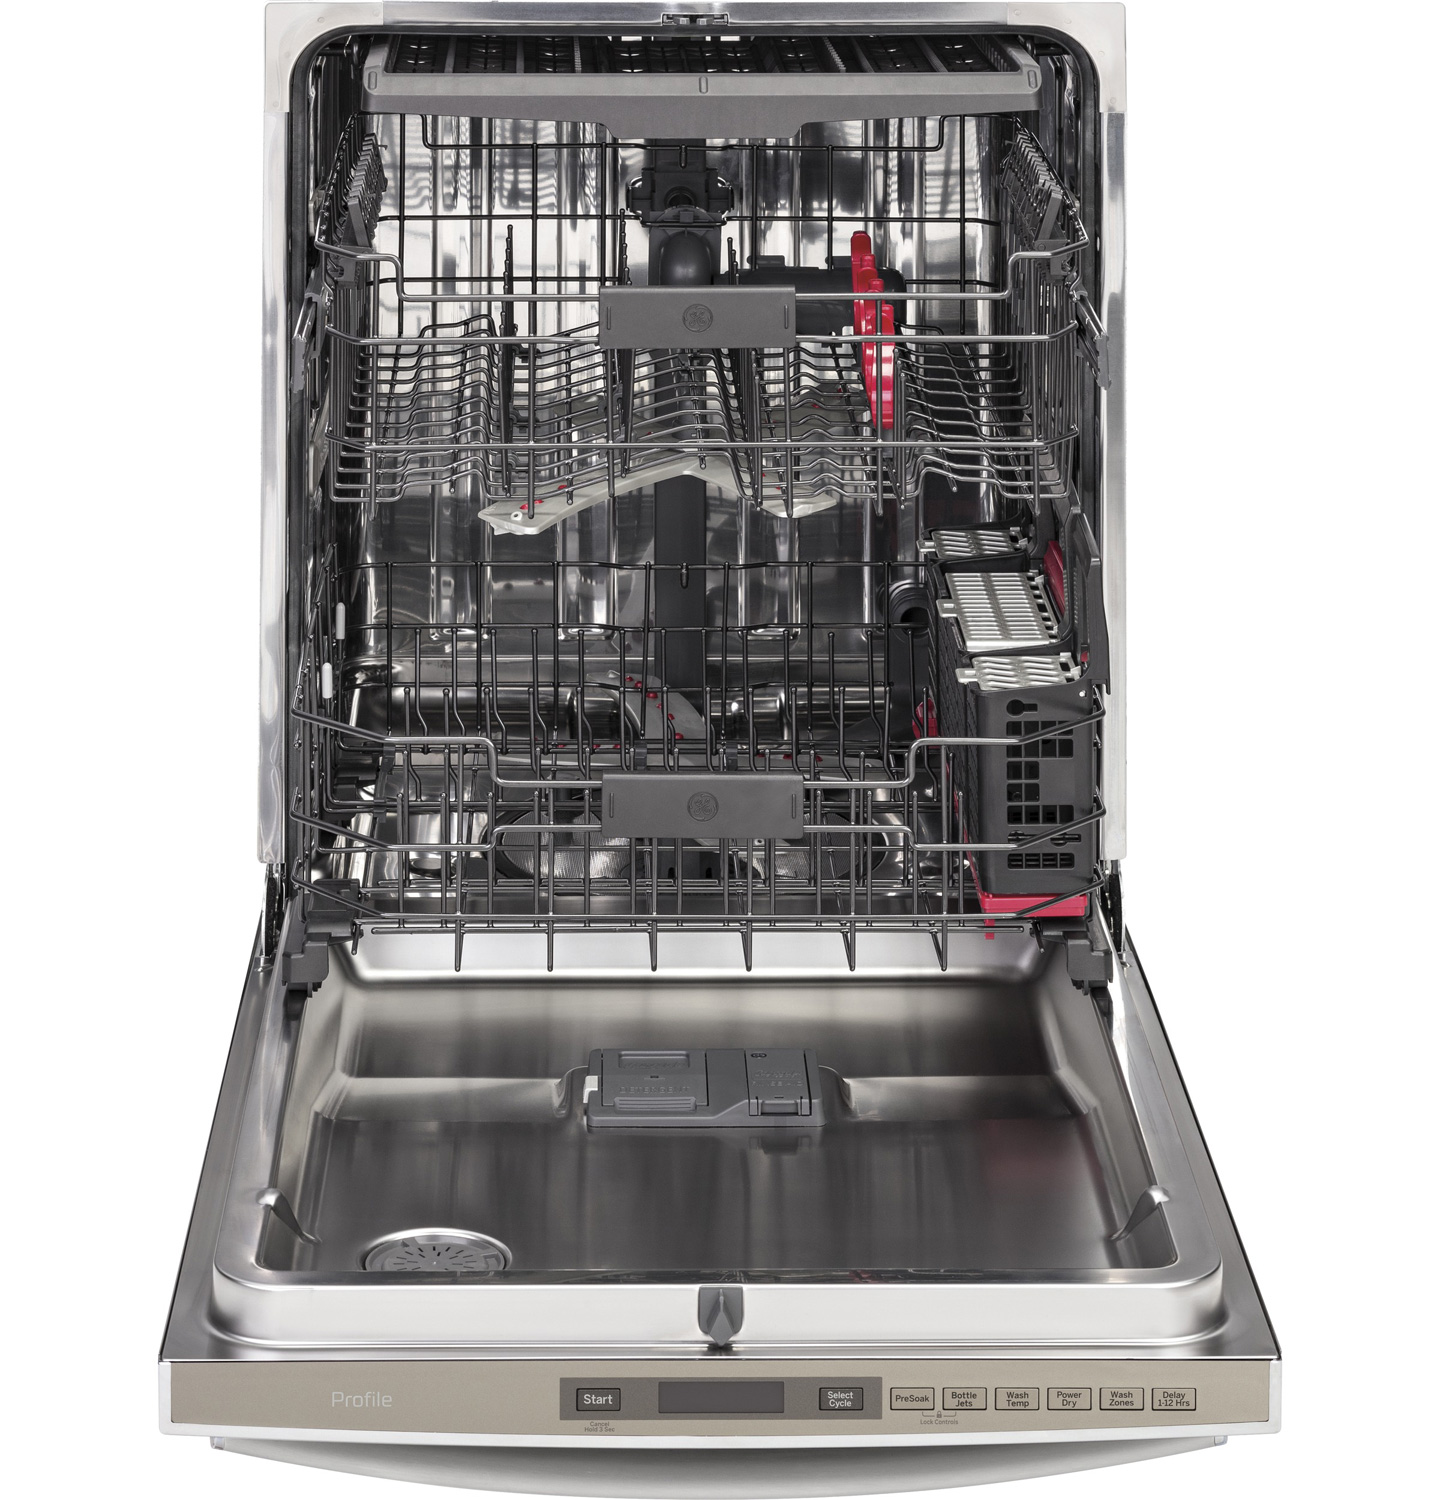 Sunshiny 2018 By Manufacturer What Is Quietest Dishwasher Your 2018 Guide Miele Dishwasher Reviews 2016 Miele Dishwasher Reviews G4203sc Quietest Dishwasers houzz-03 Miele Dishwasher Reviews